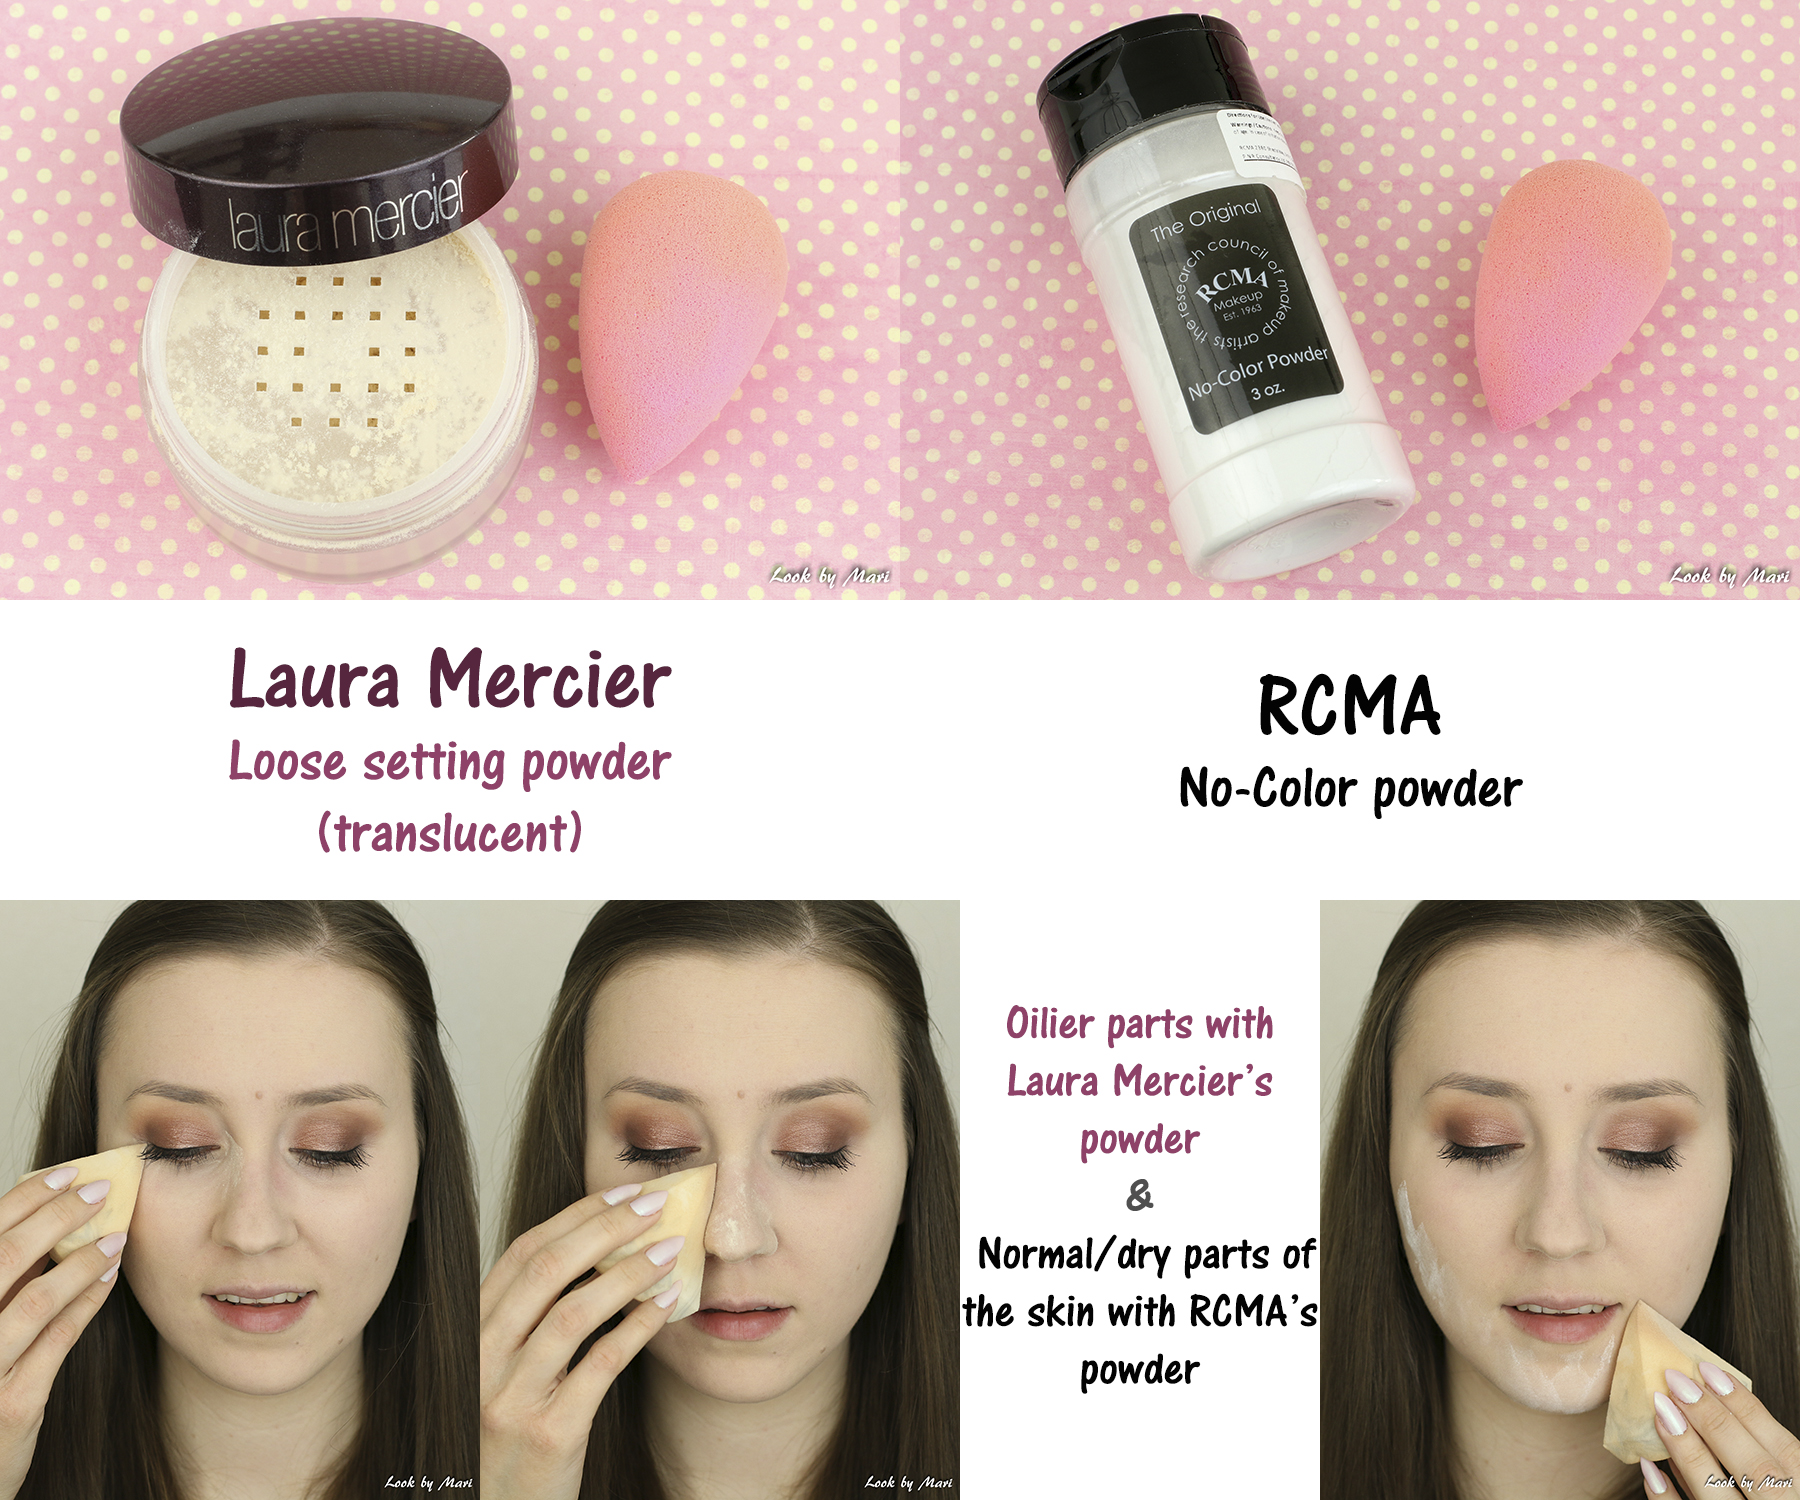 12 laura mercier loose setting powder vs rcma no-xolor powder review